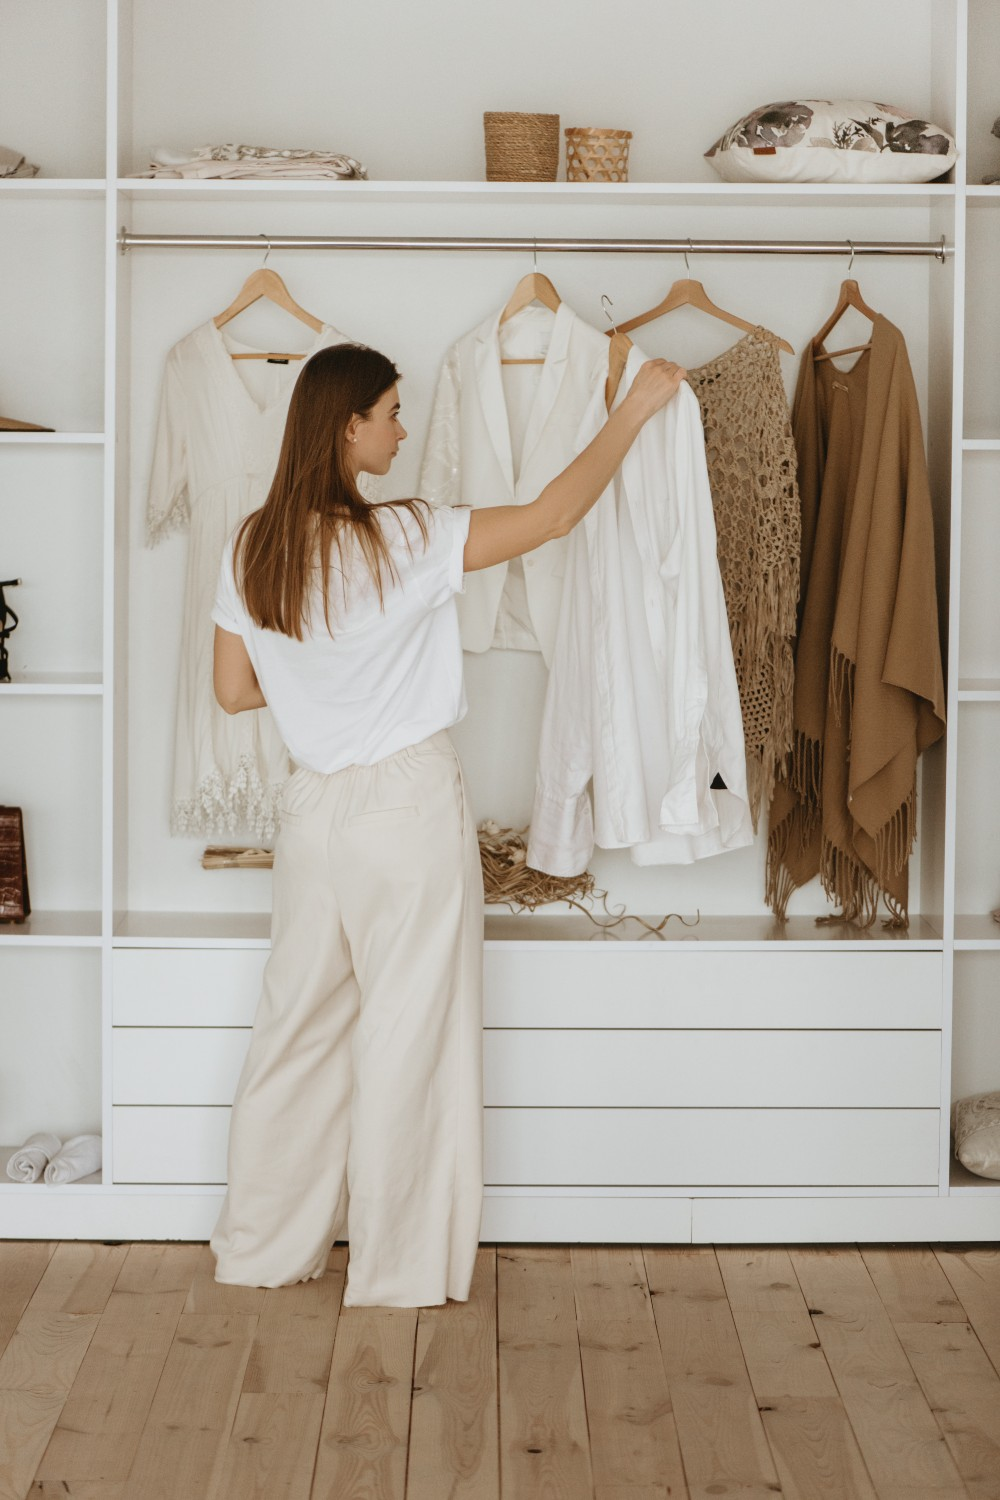 Fit issues could be holding brands back from reaching their sustainability goals, Fashiondex said Monday.